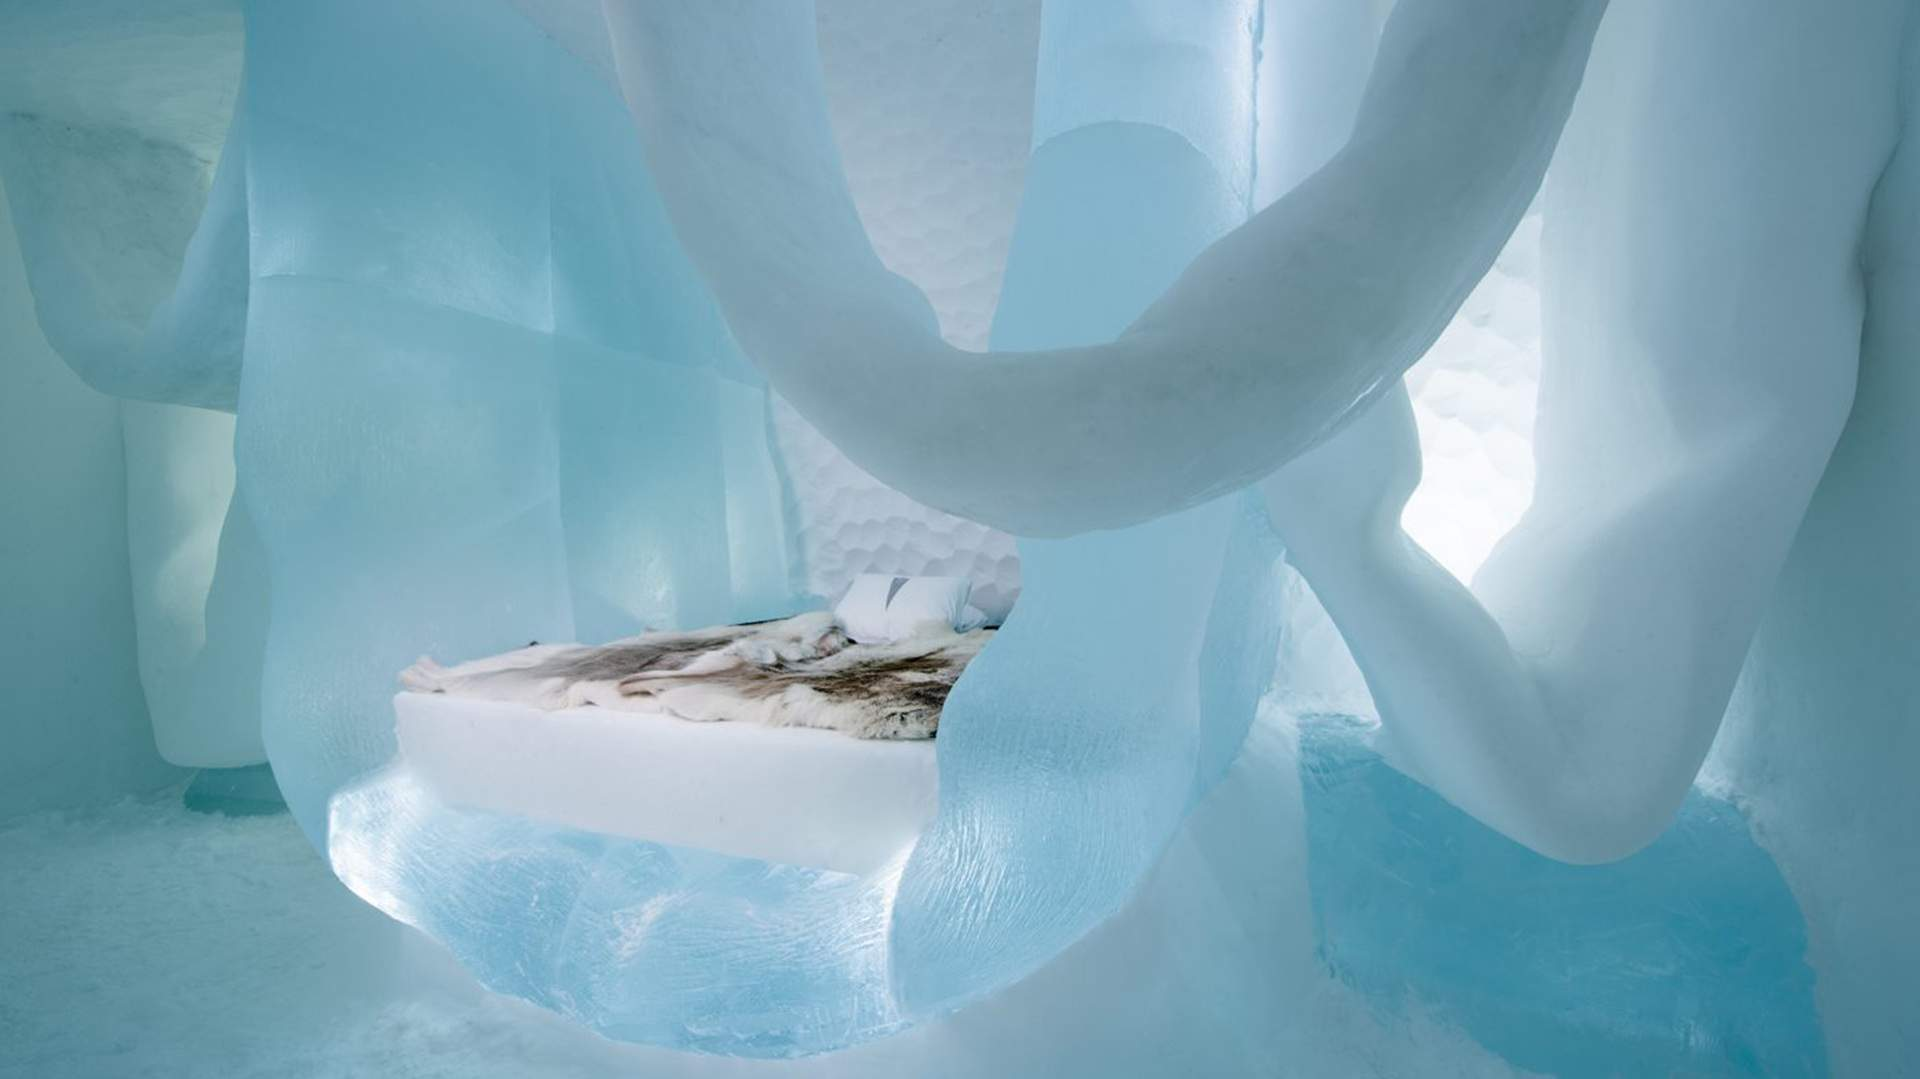 Sweden's Ice Hotel Has Unveiled Its Frosty New Artist-Created Rooms